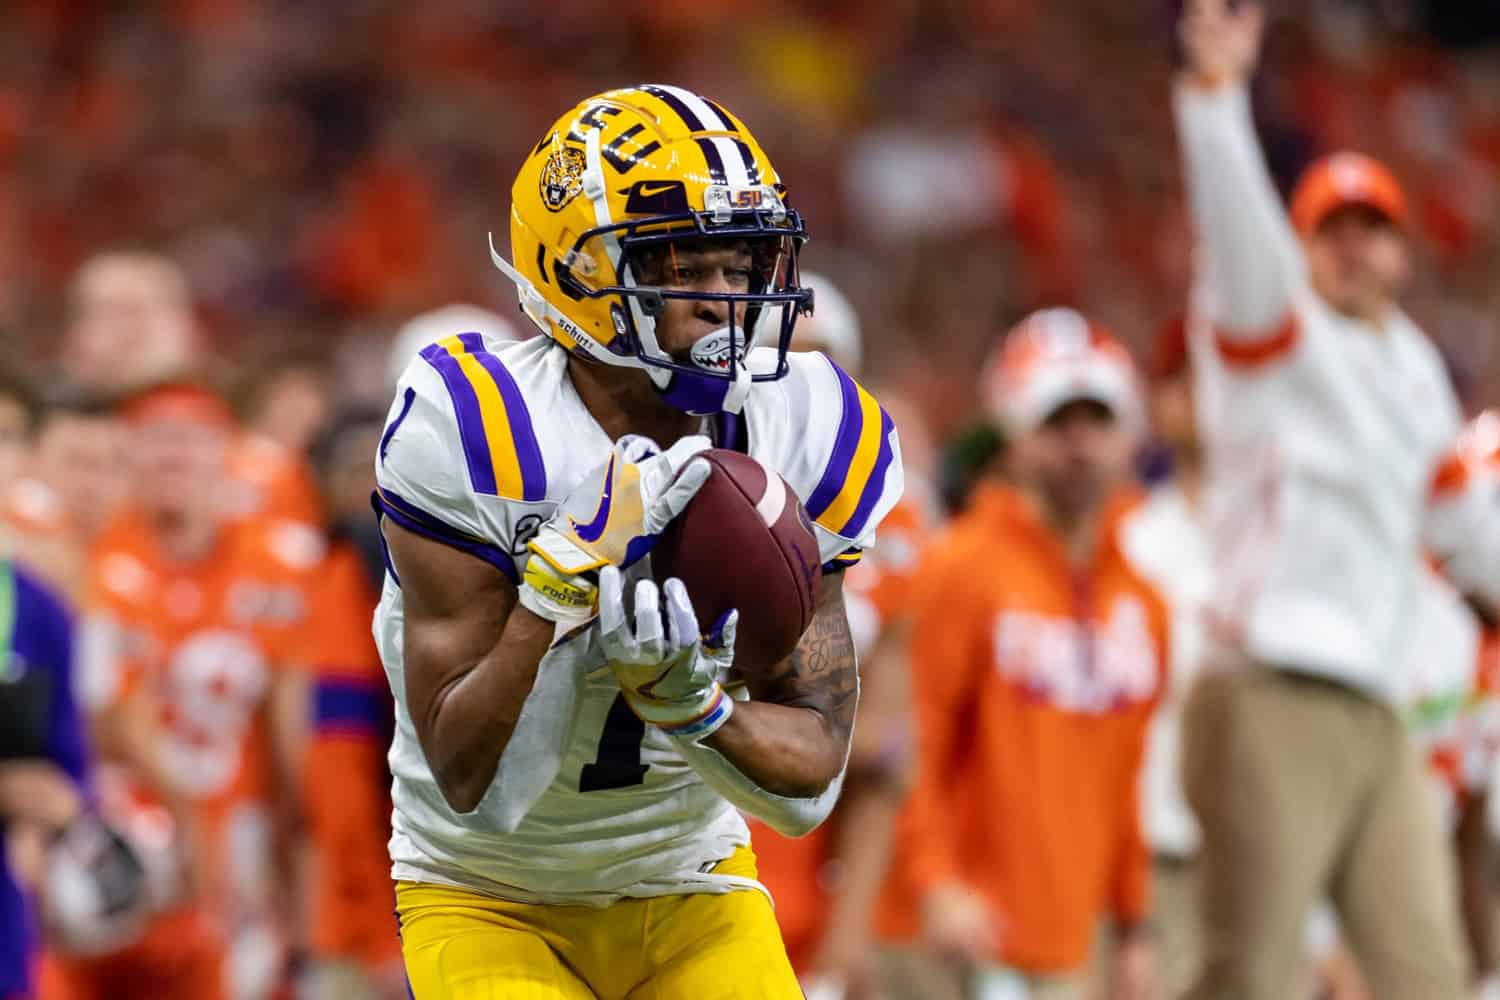 NFL Rumors & Draft News: Ja'Marr Chase's potential, teams moving up for QBs, and more